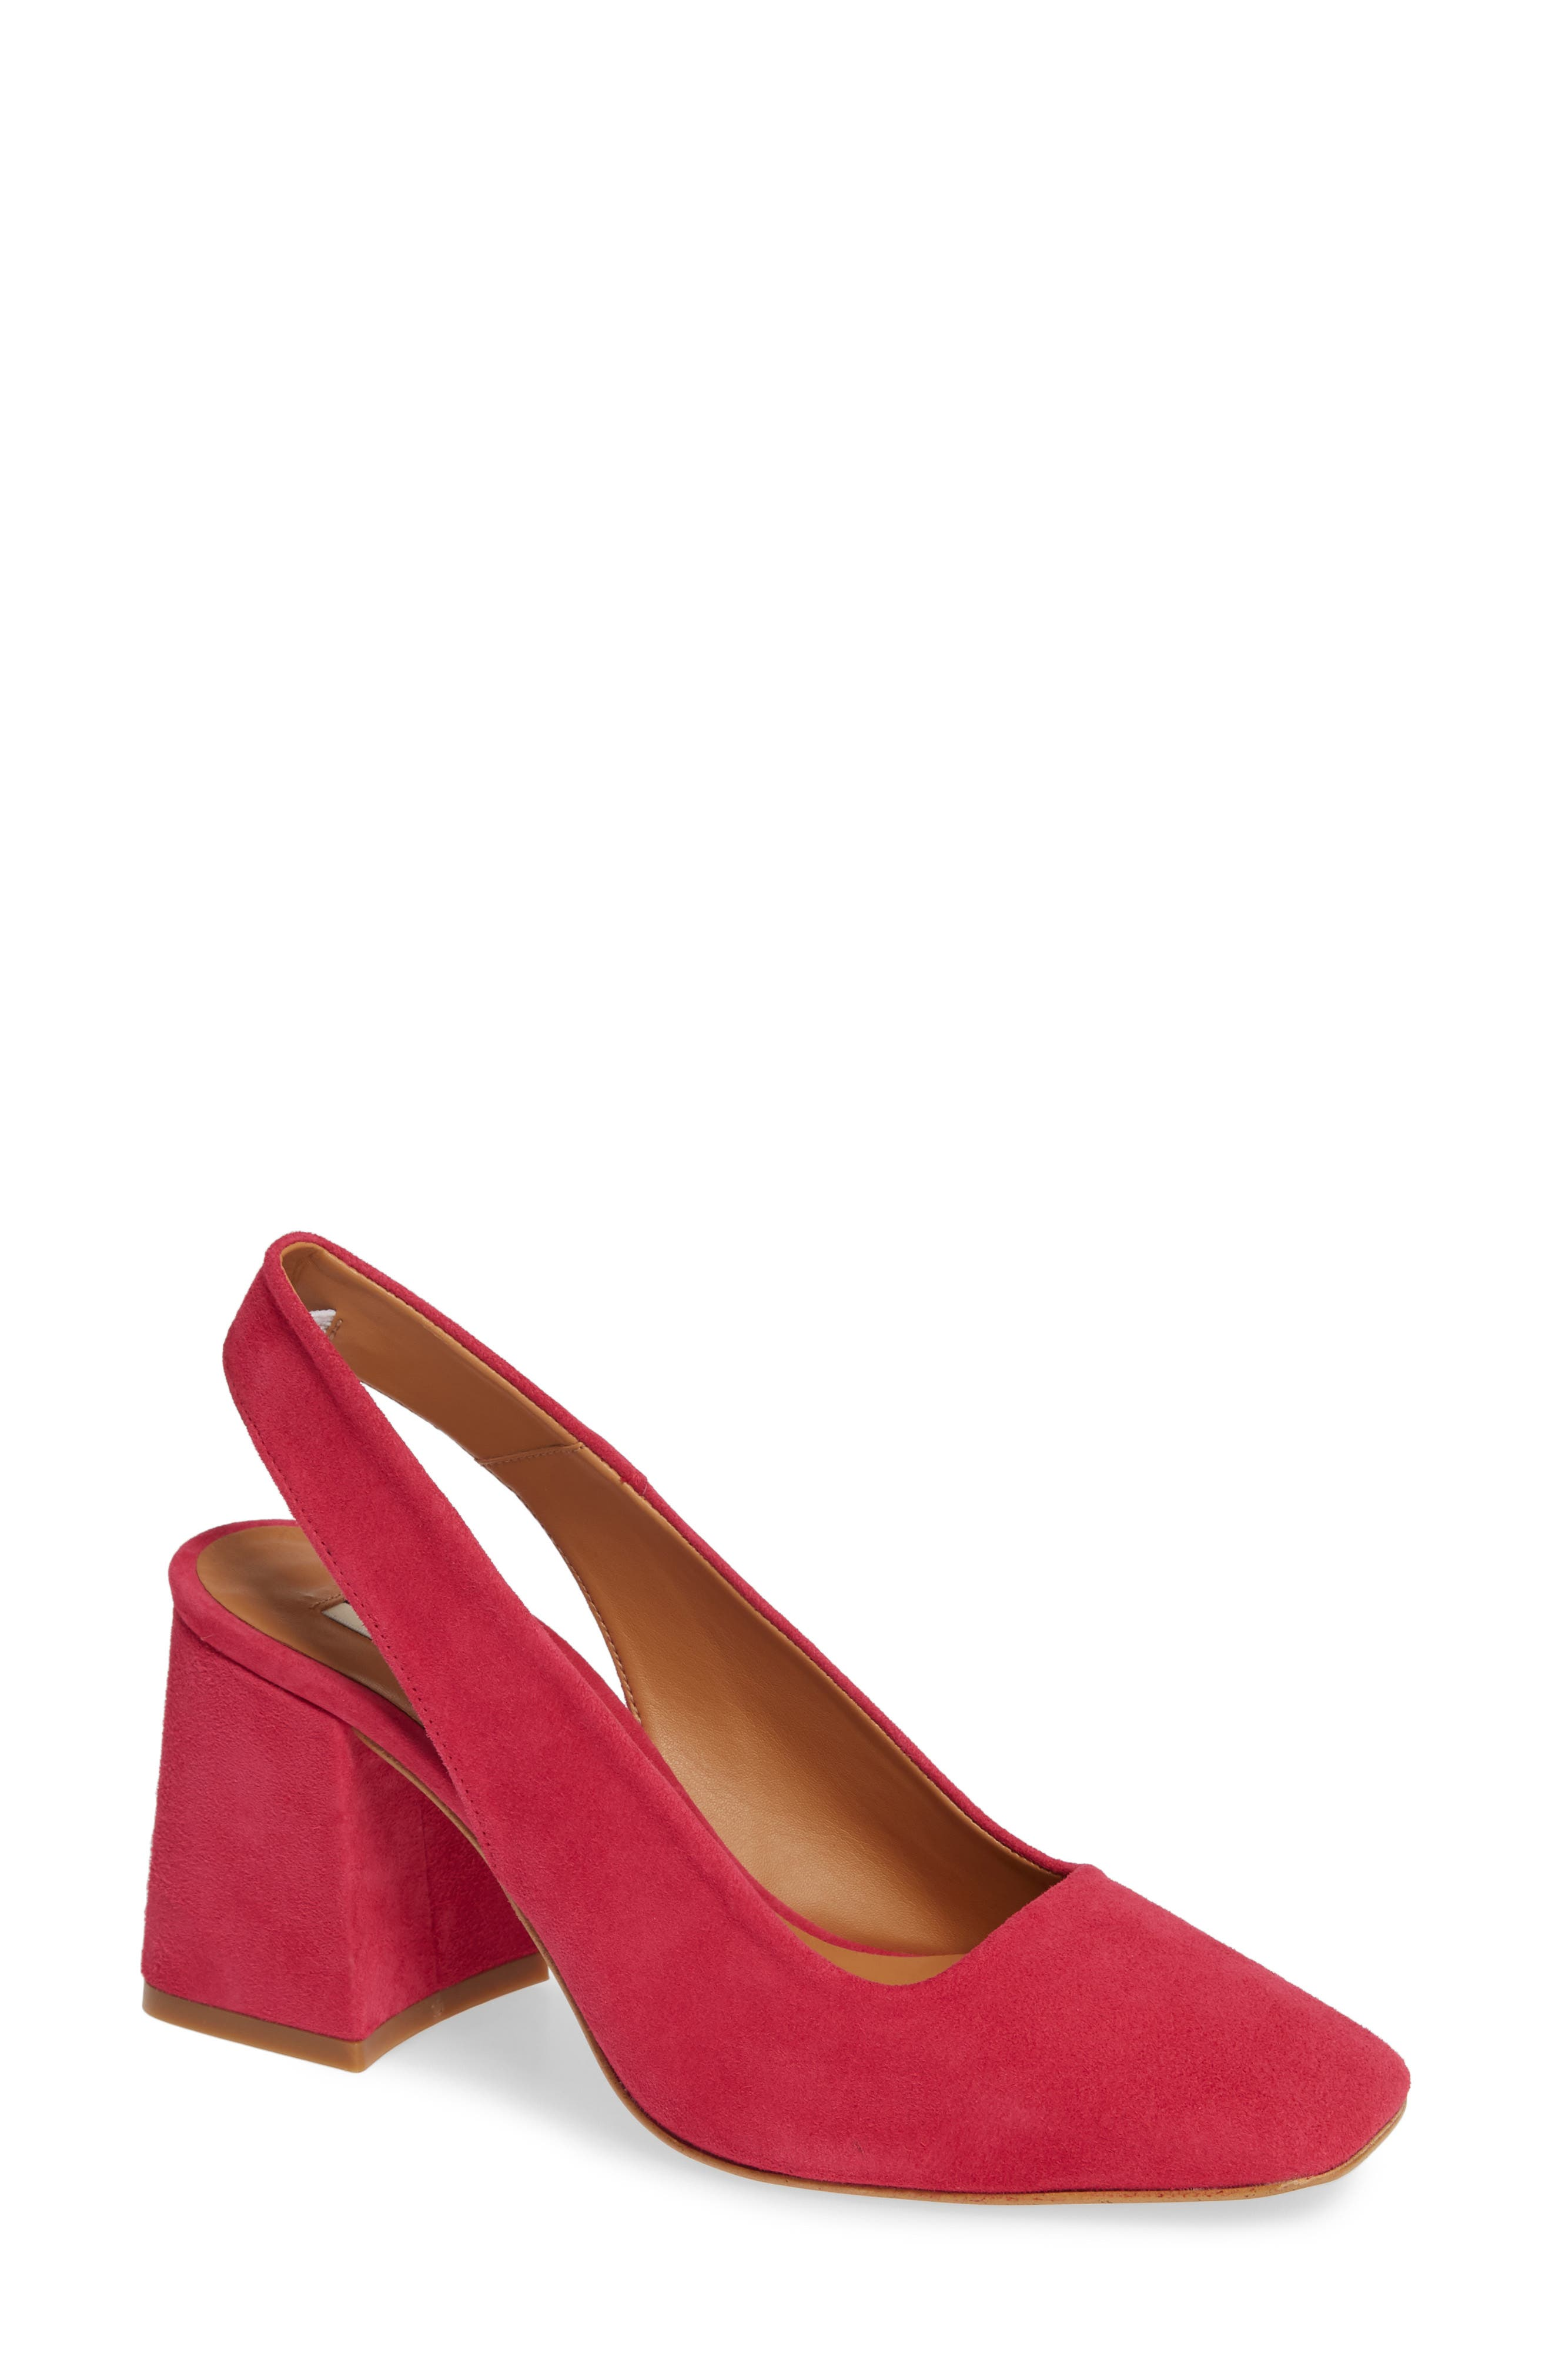 Gainor Block Heel Slingback Pump,                         Main,                         color, PINK